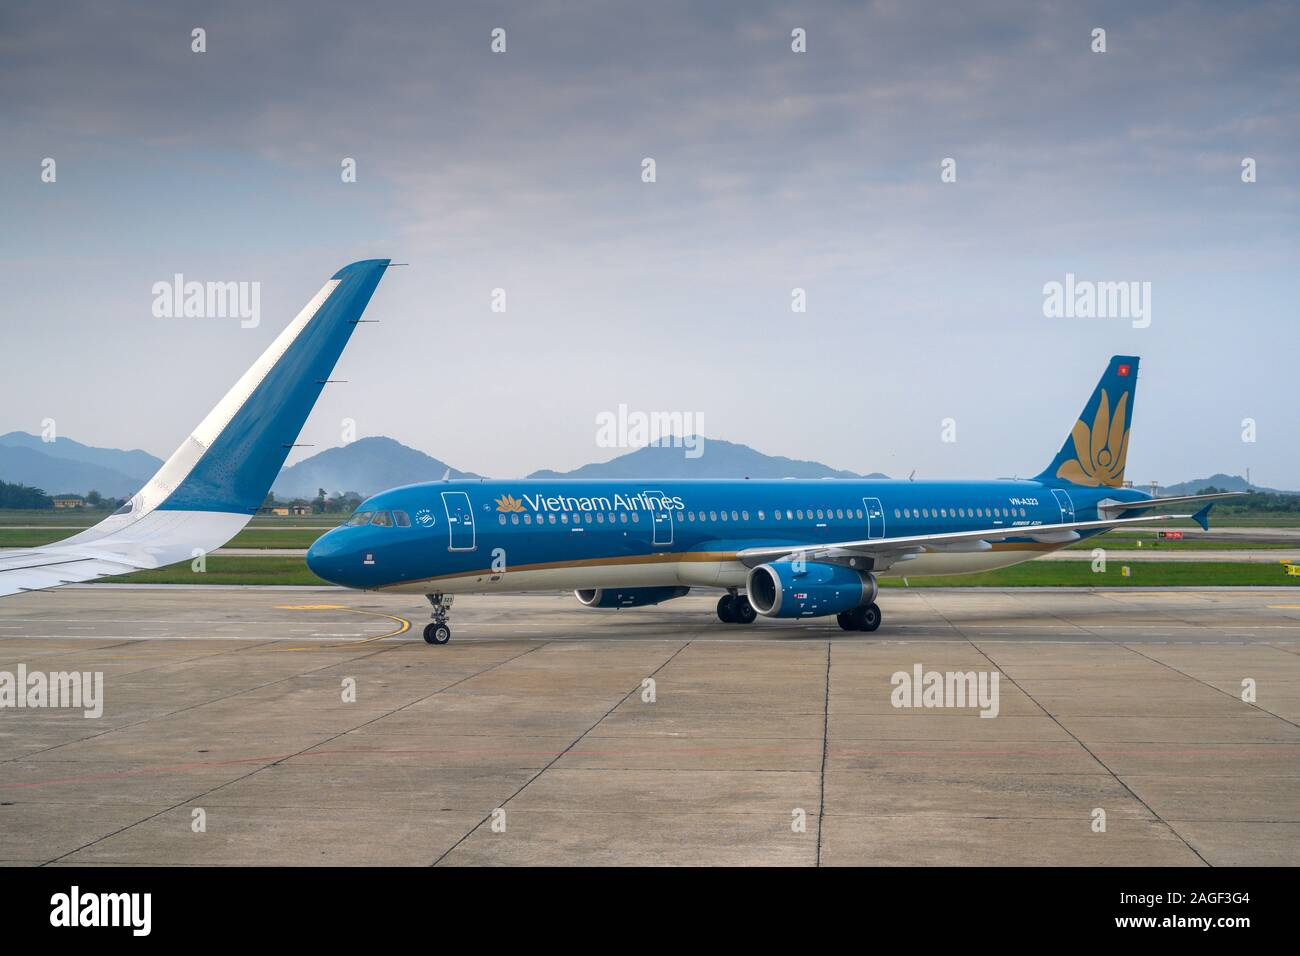 Hanoi Vietnam November 04 2019 Vietnam Airlines Airbus A321 200 With The Aircraft Registration Number Vn A323 At Hanoi Nội Bai International Air Stock Photo Alamy